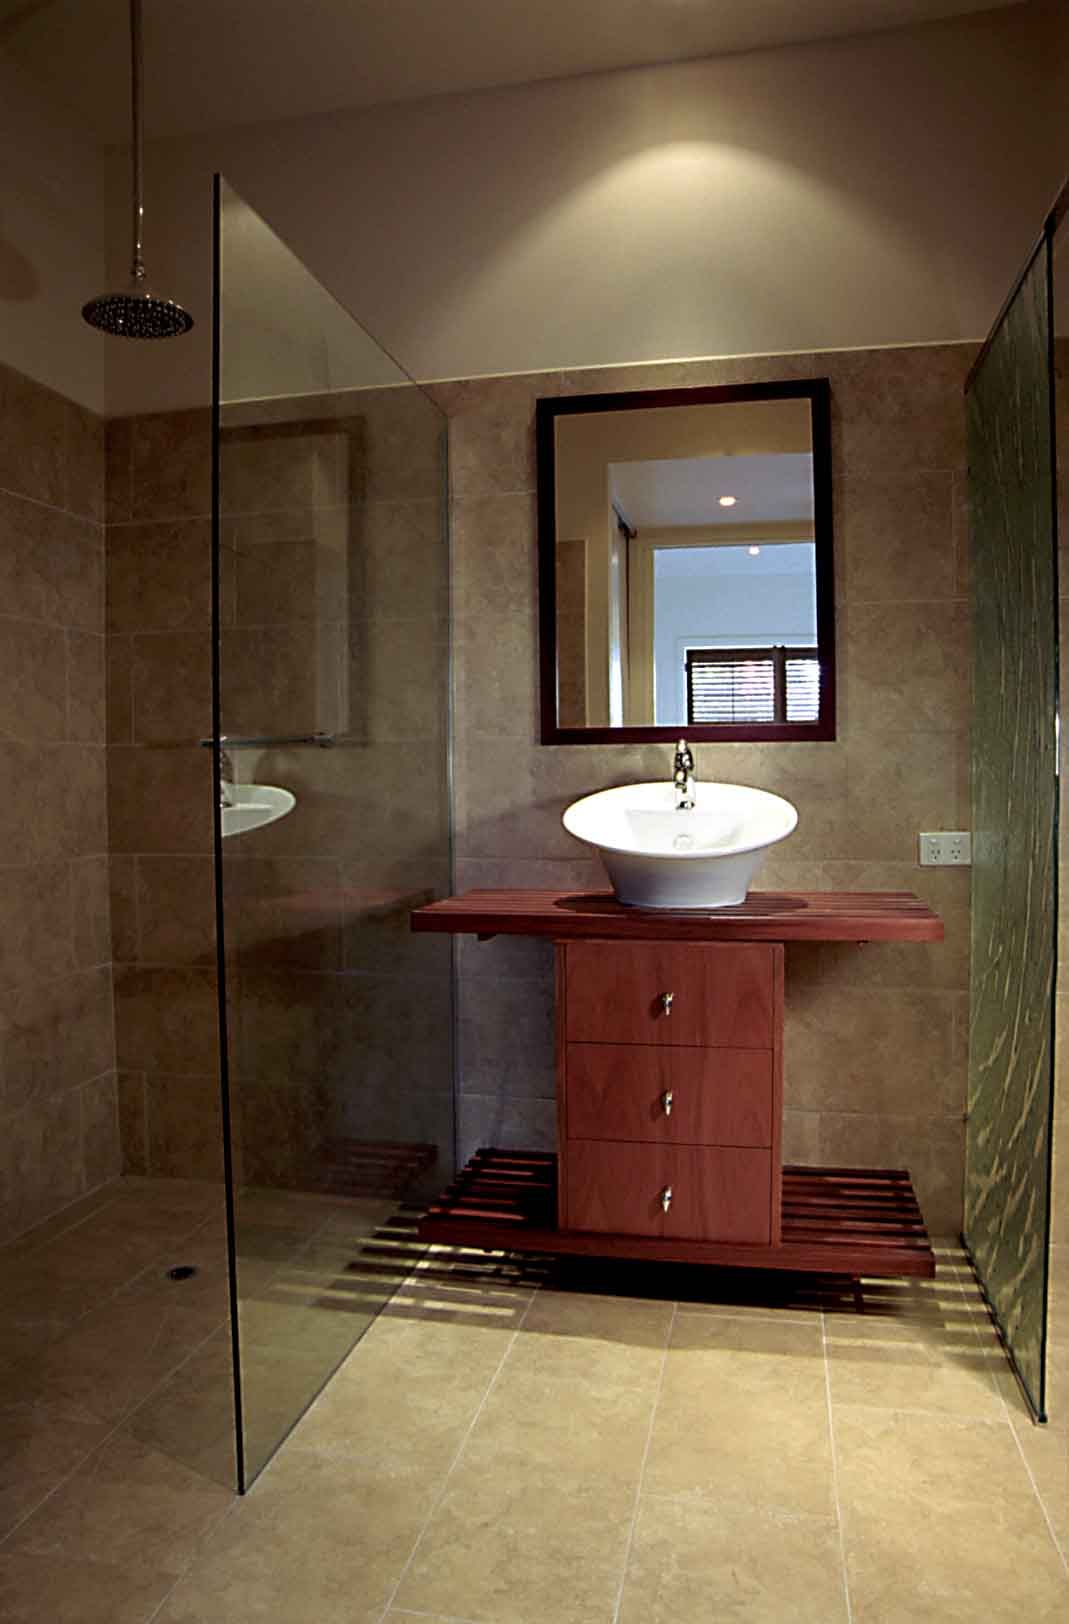 Wet room design for small bathrooms small ensuite for Small bedroom with bathroom design